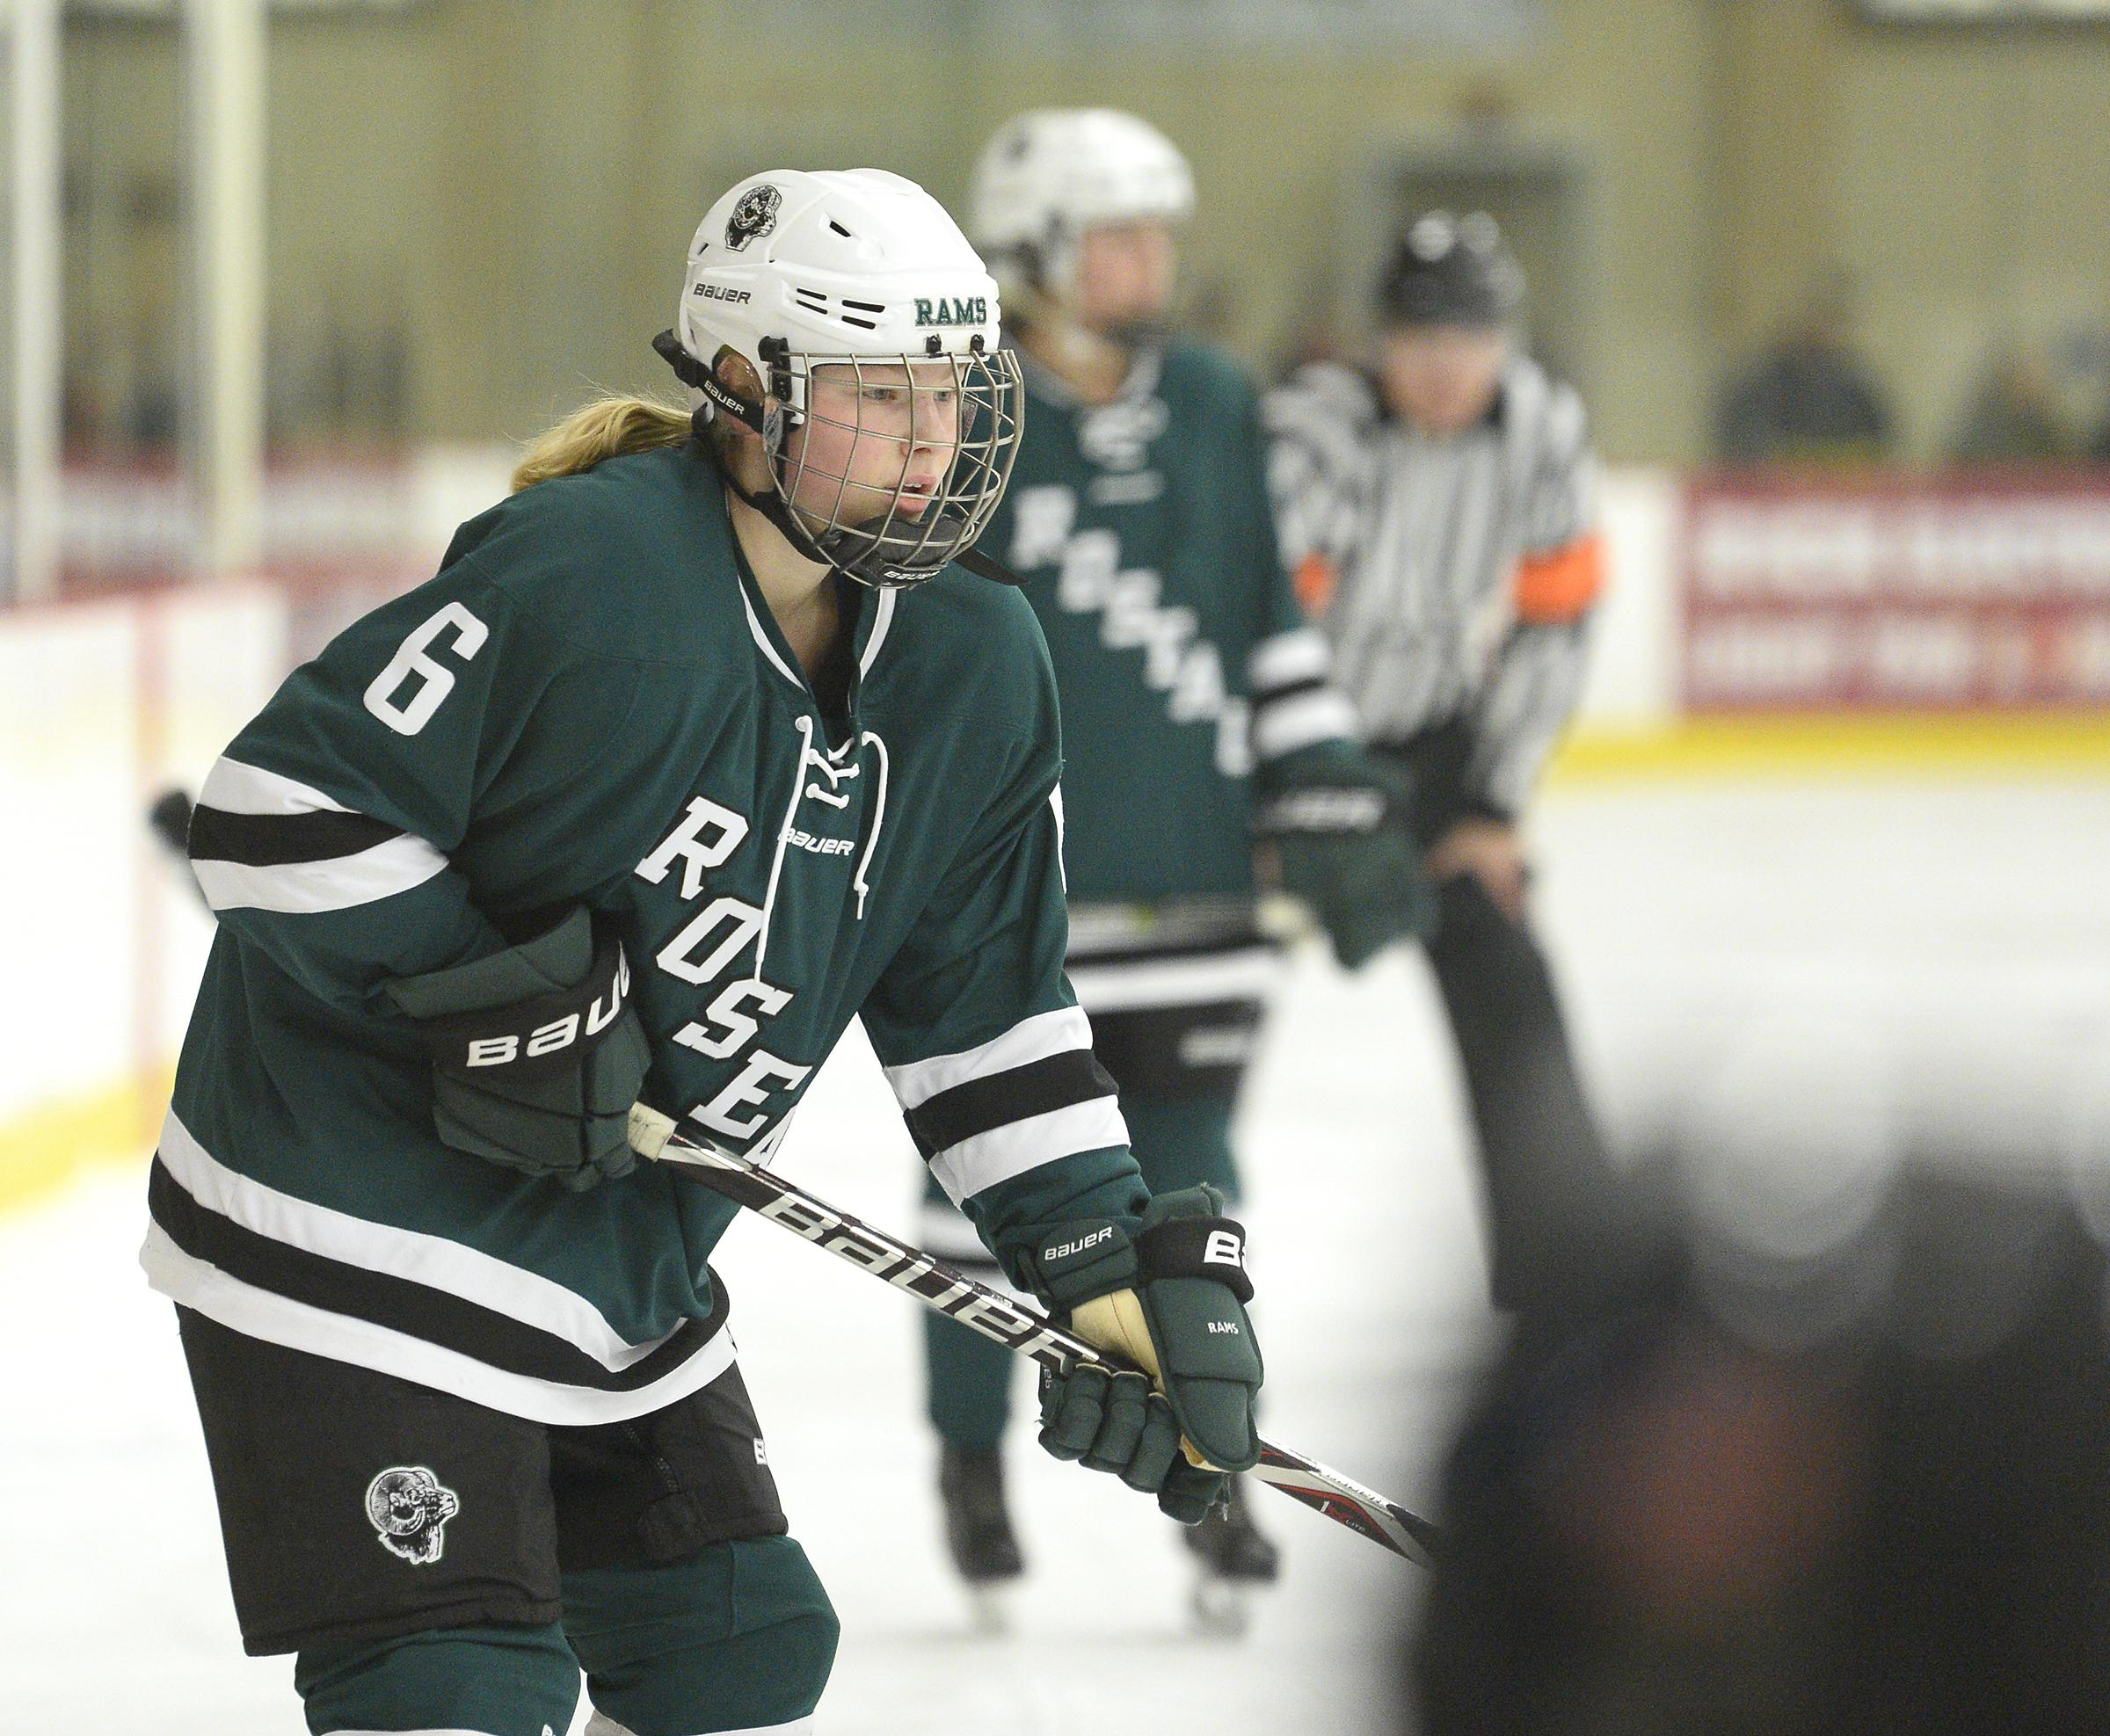 Roseau's Kayla Santl (6) recorded her 100th career point with a second-period assist on Reese Strand's goal. The Rams beat the Spuds 6-0 on Tuesday night. Photo by Tim Kolehmainen, SportsEngine